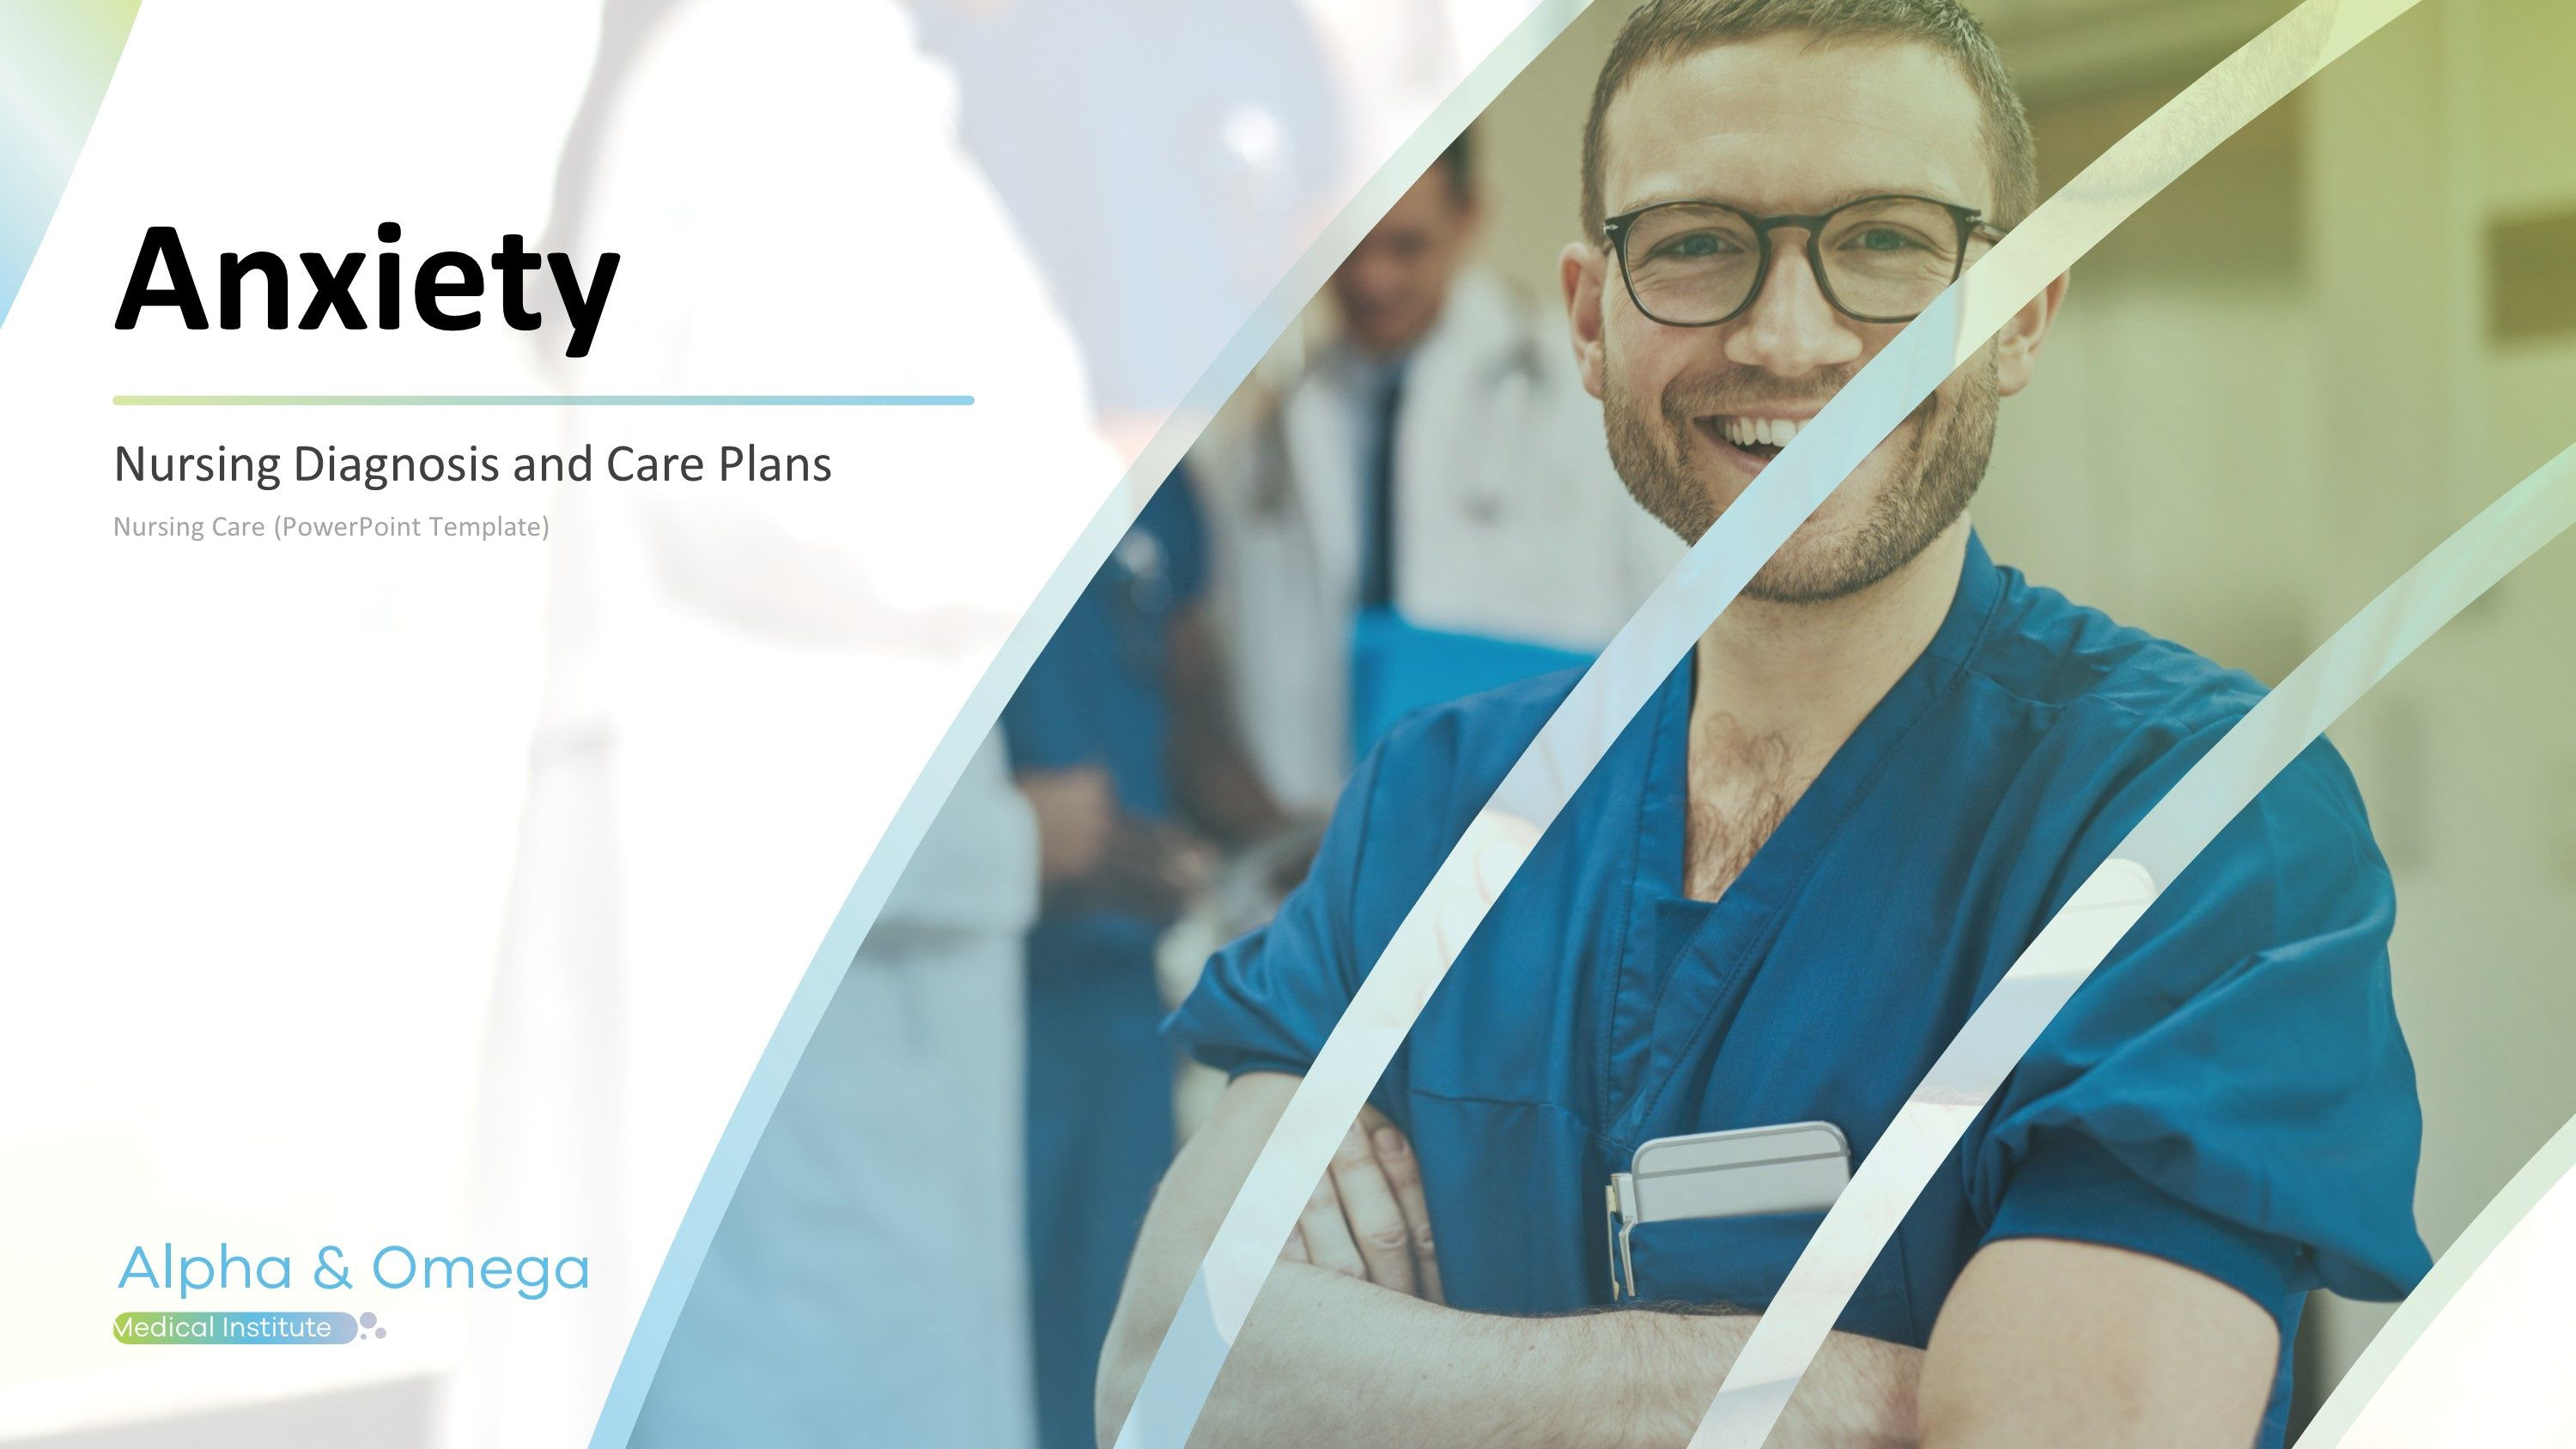 004 Incredible Free Nursing Powerpoint Template High Definition  Education DownloadFull